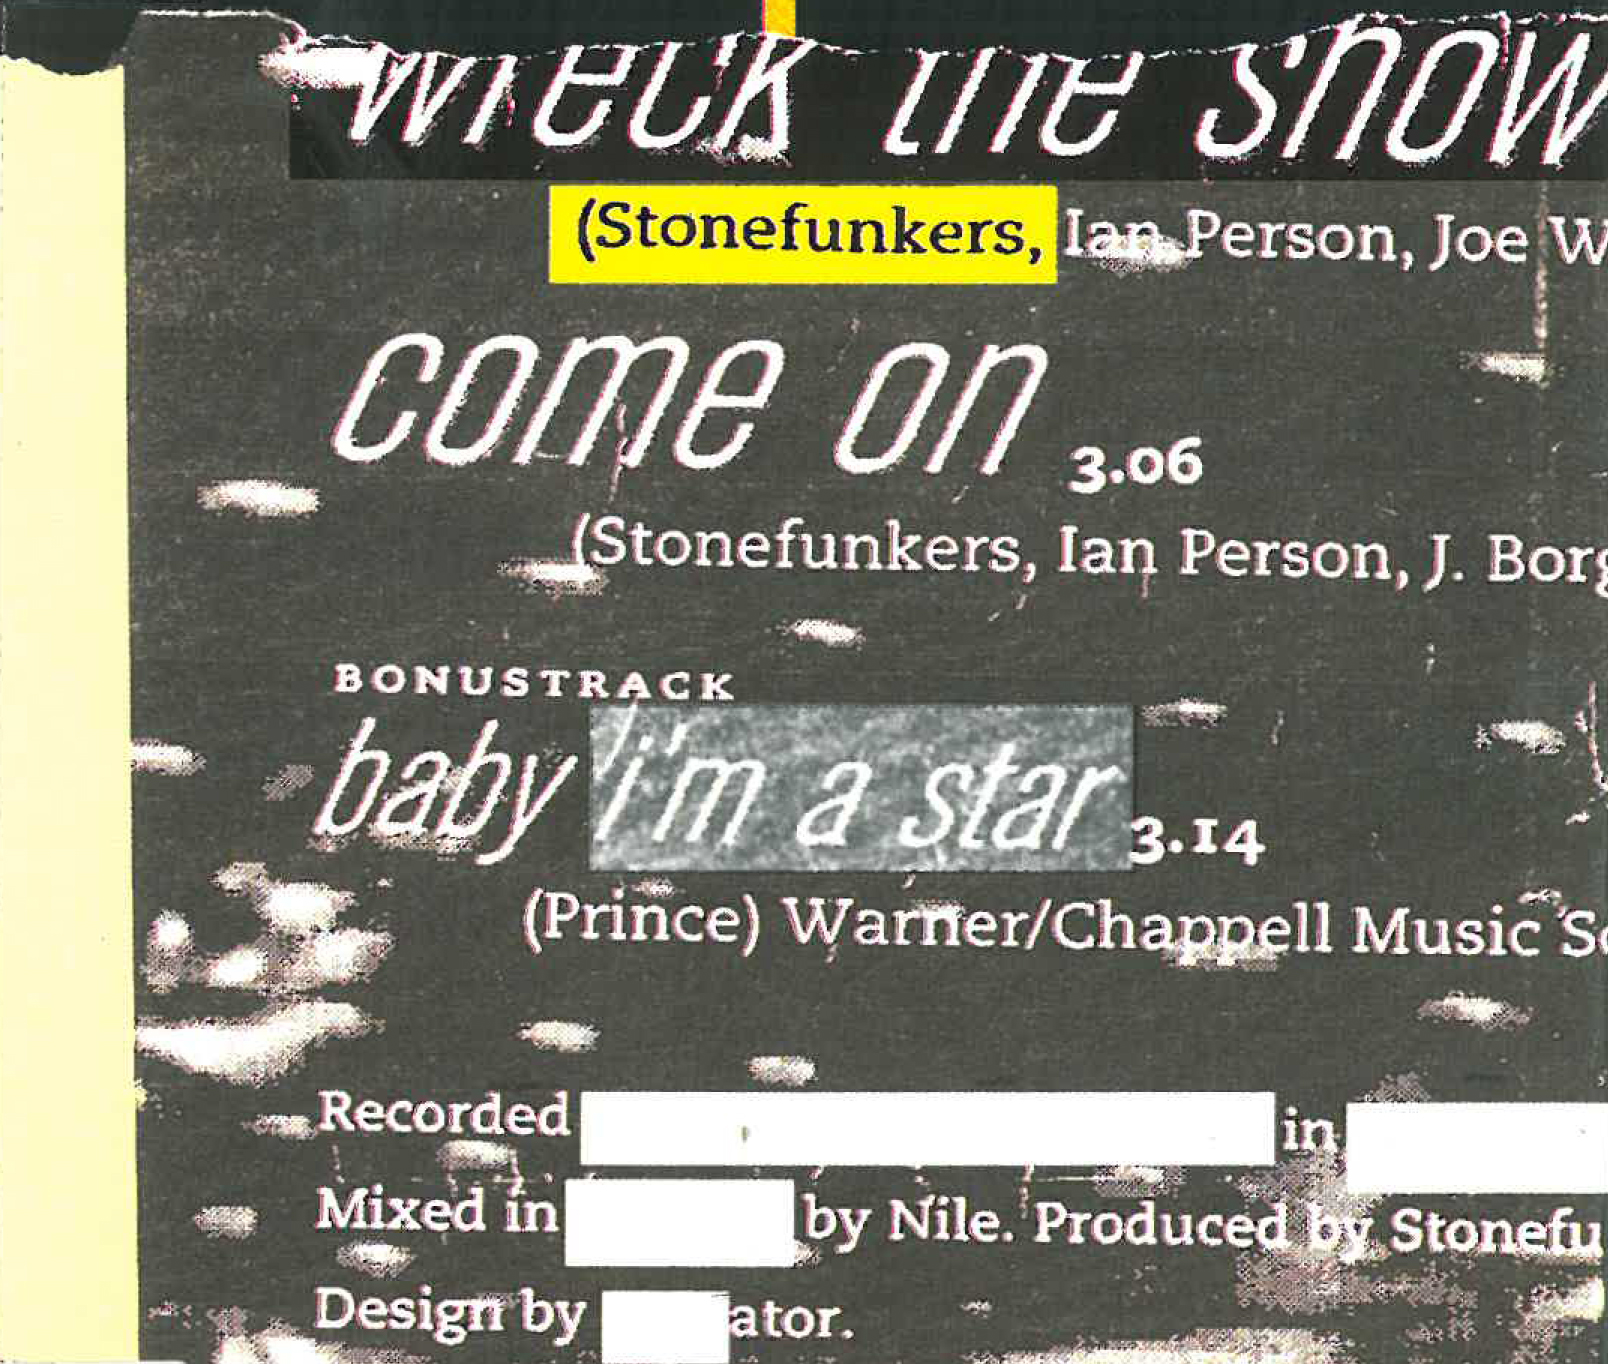 Stonefunkers_Wreck_The_Show_2.jpg